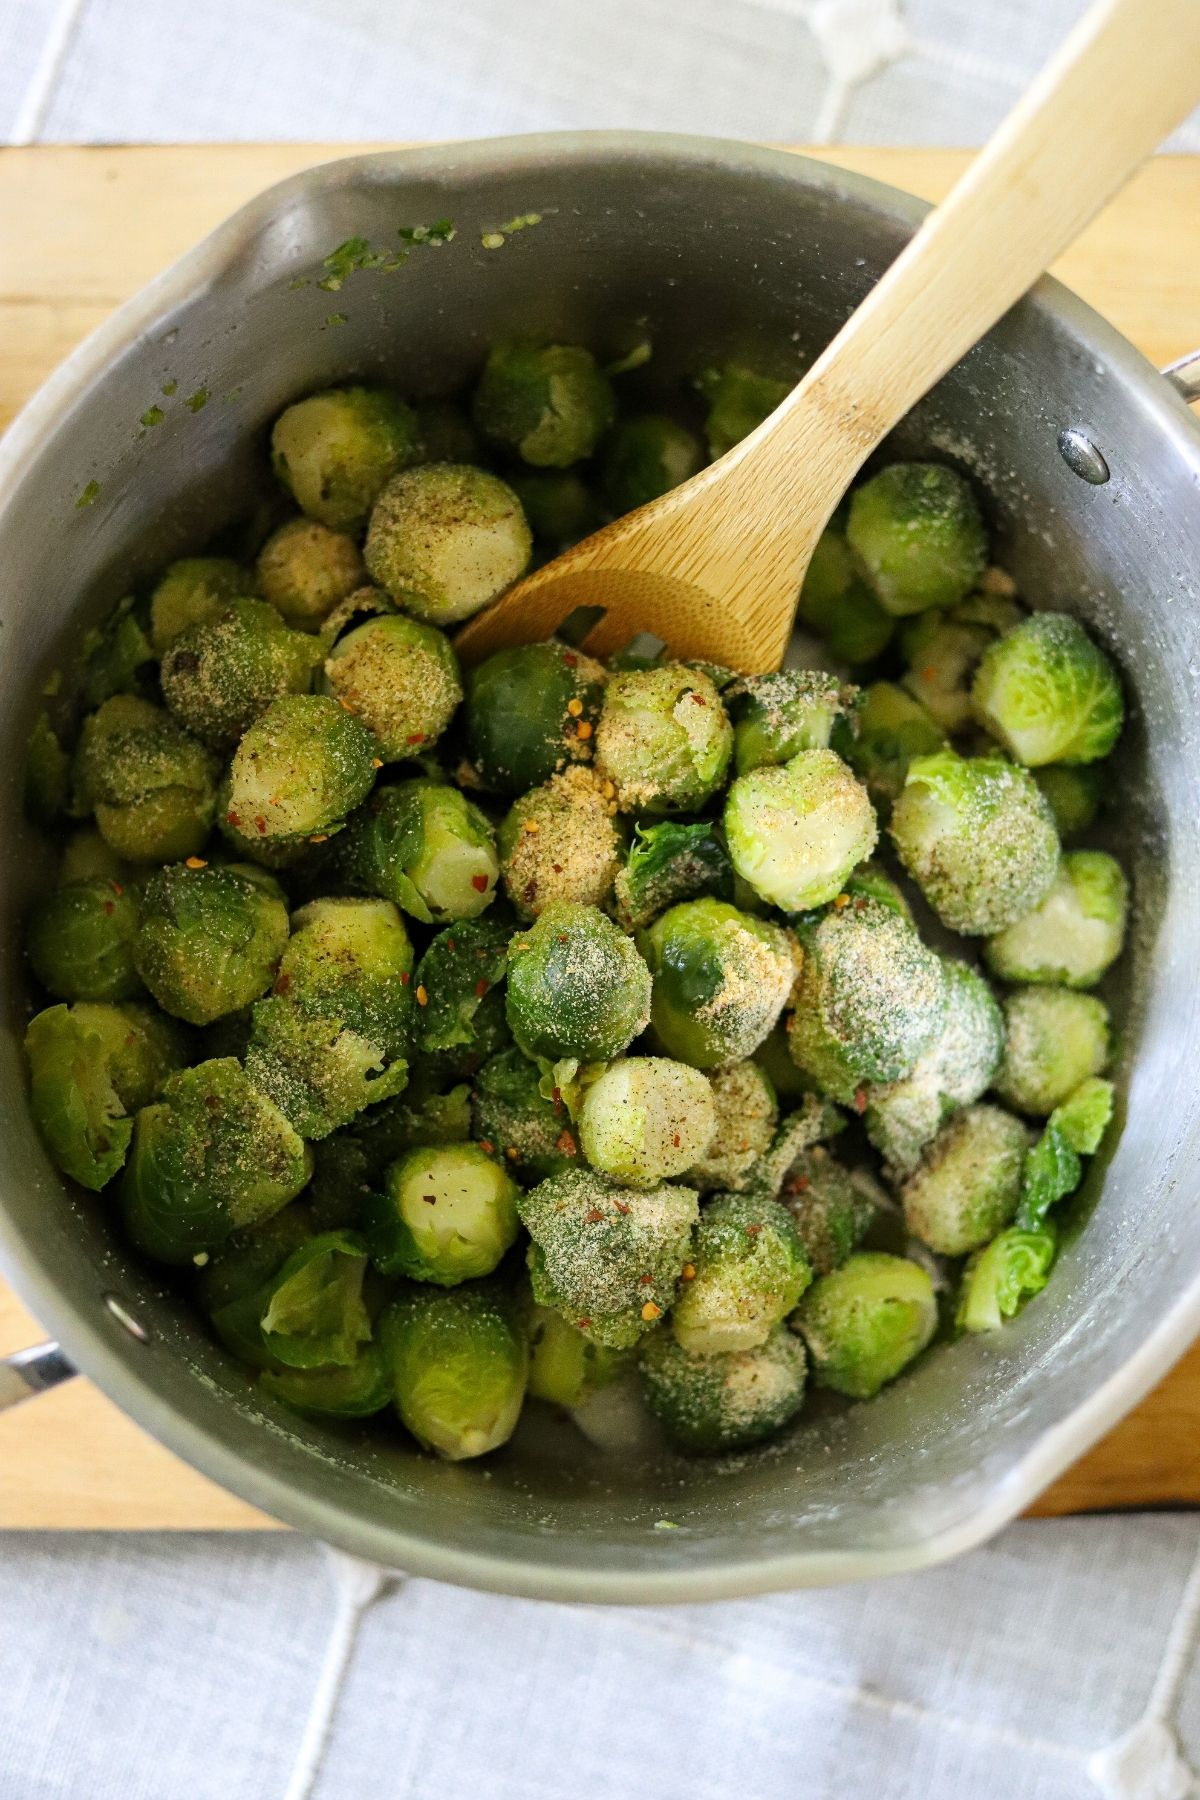 Brussels sprouts in a large pot, topped with various seasonings